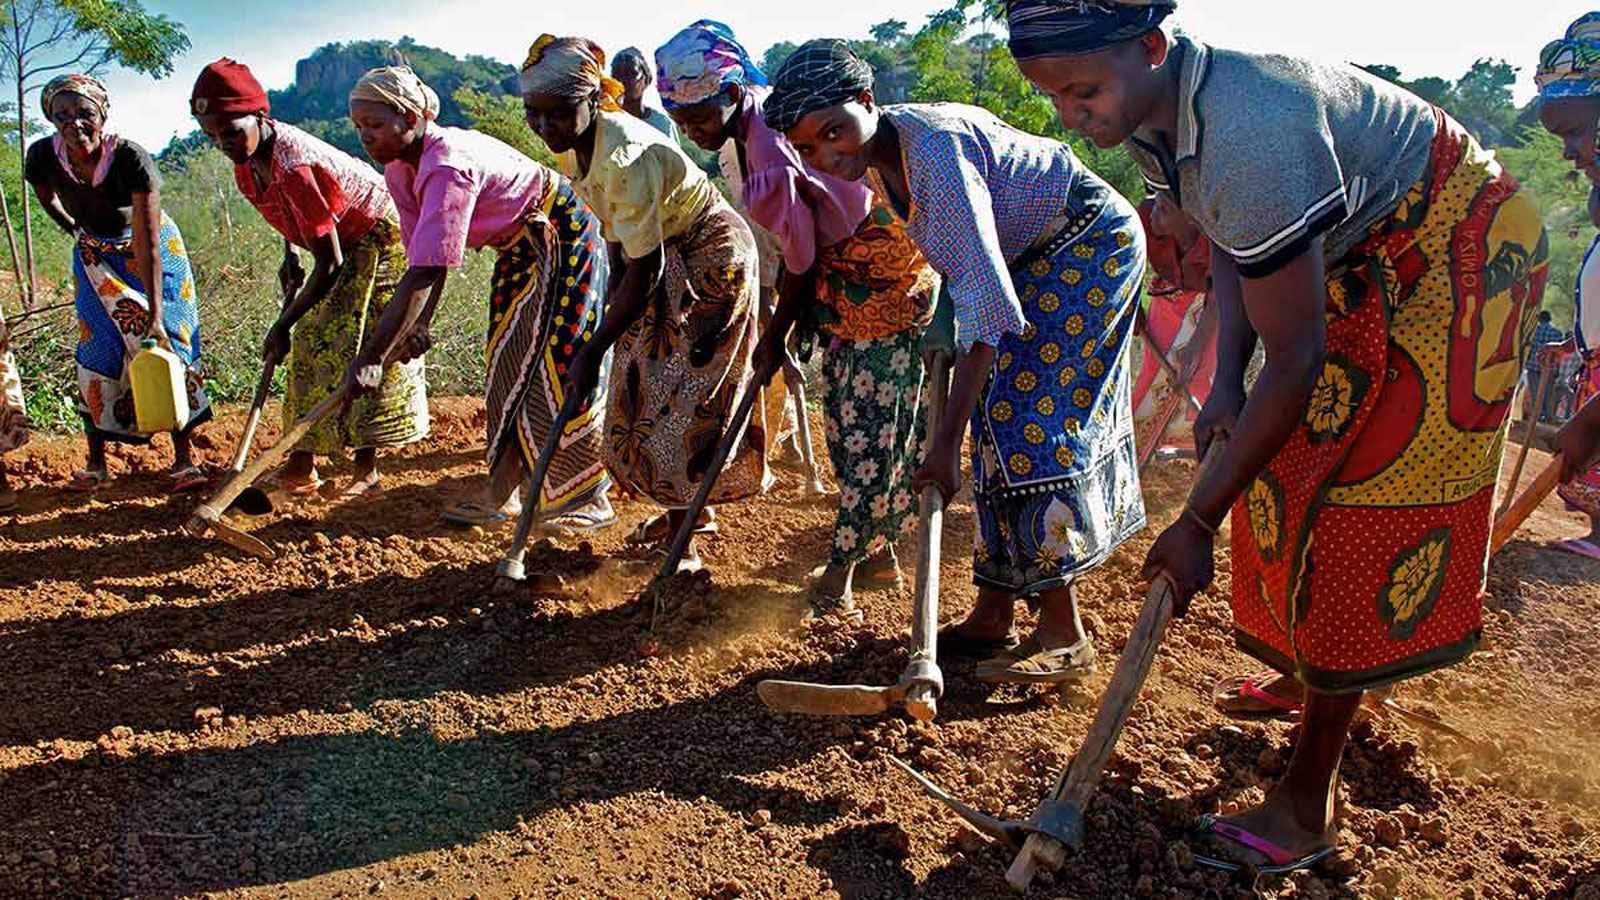 Women prepare the land.